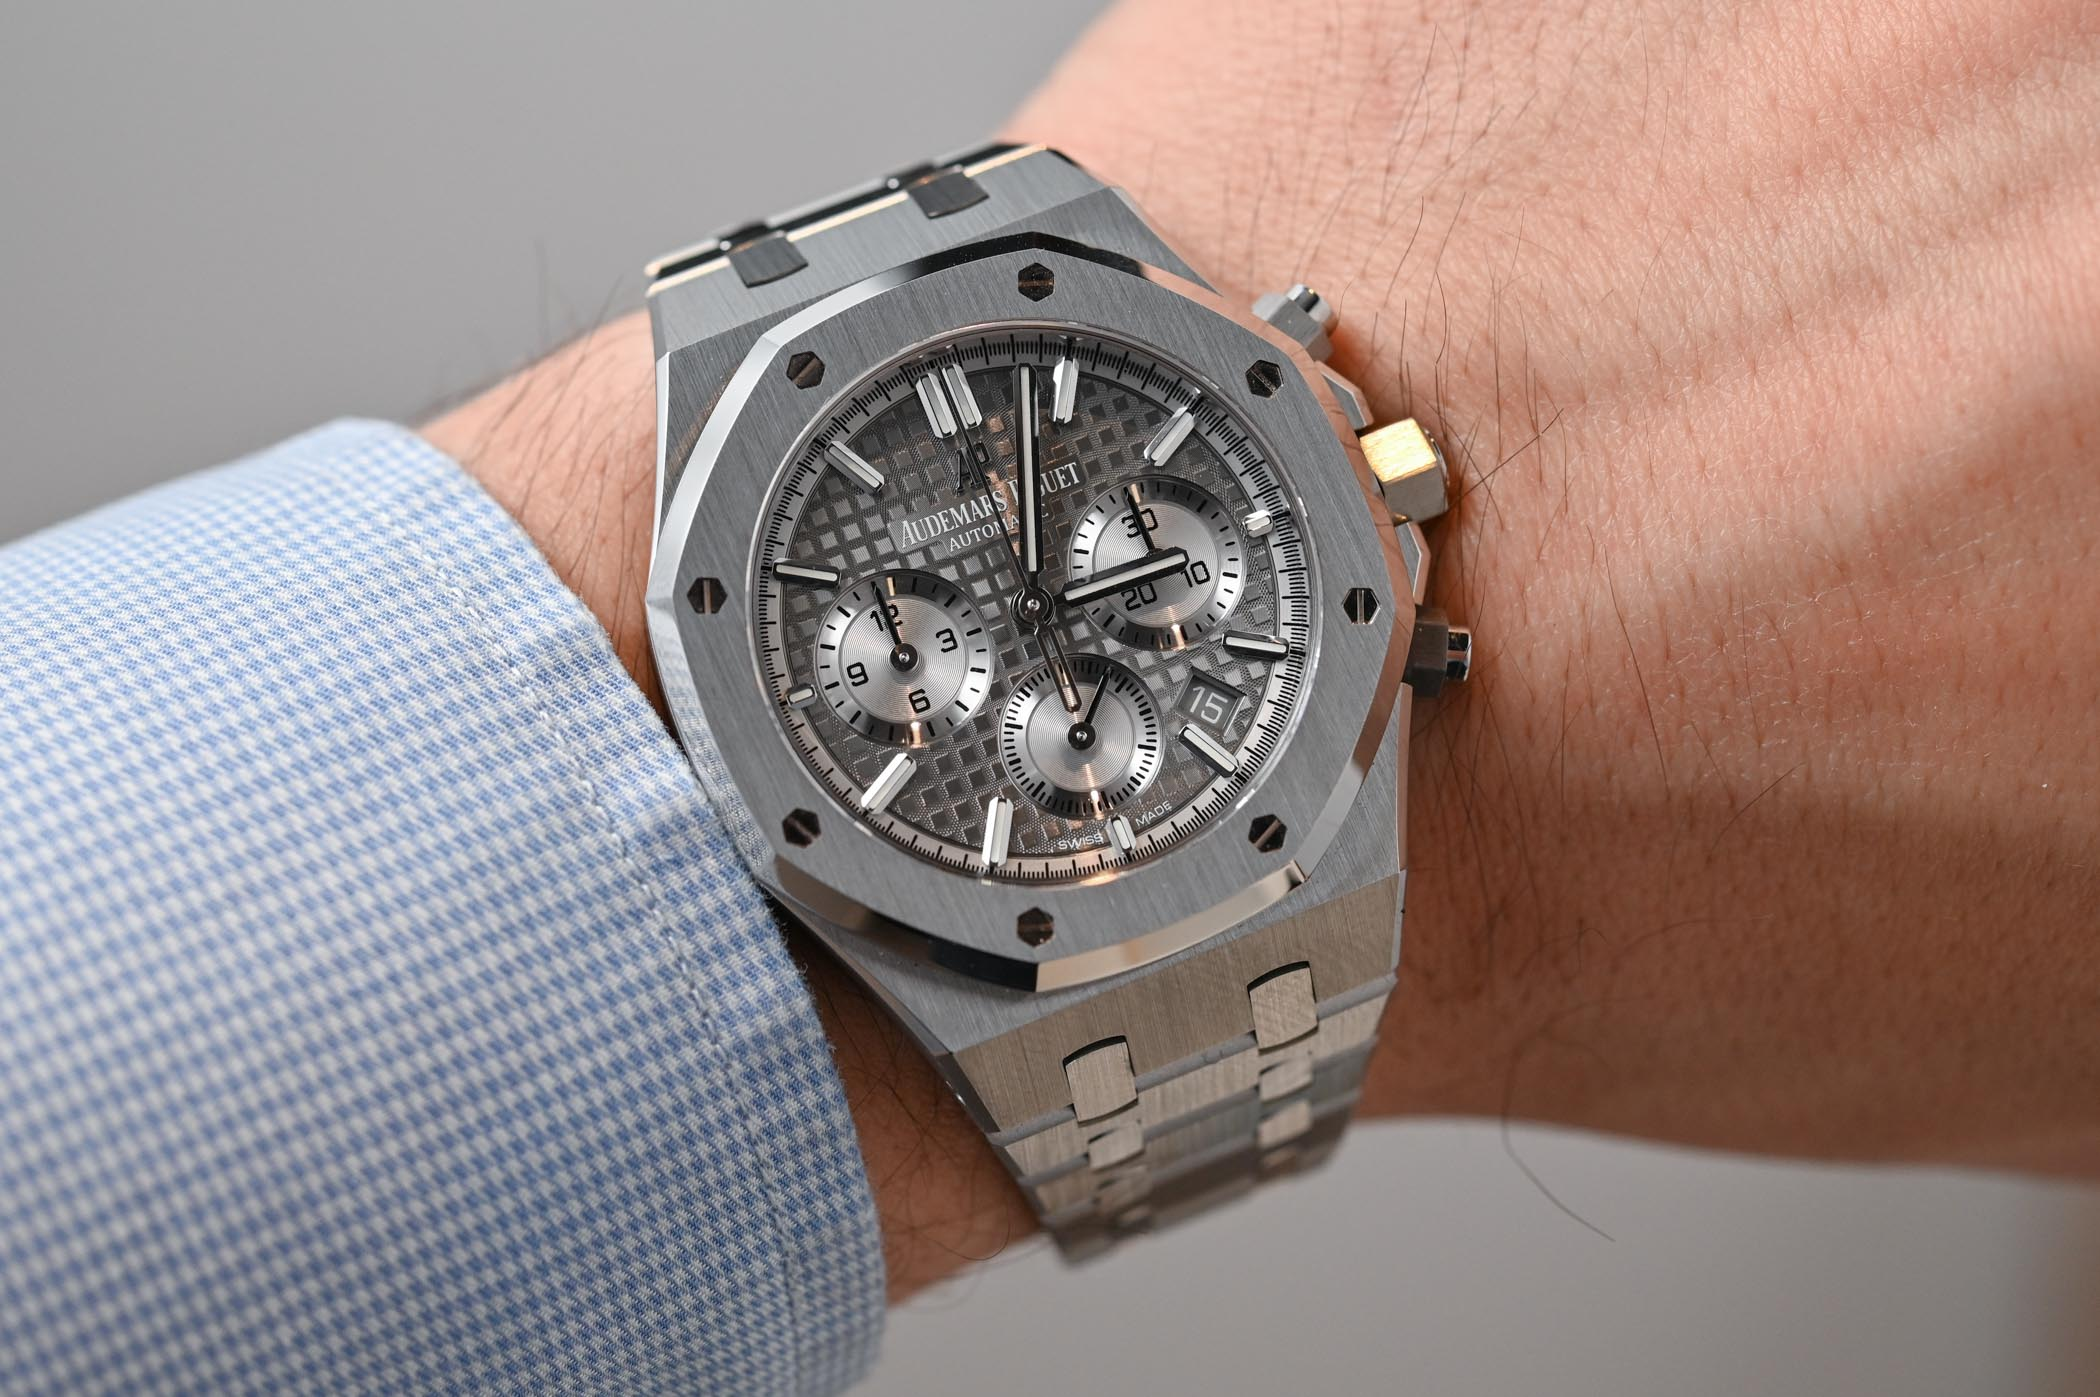 80496f787db31 Hands-On - Audemars Piguet Royal Oak Selfwinding Chronograph 38mm ...